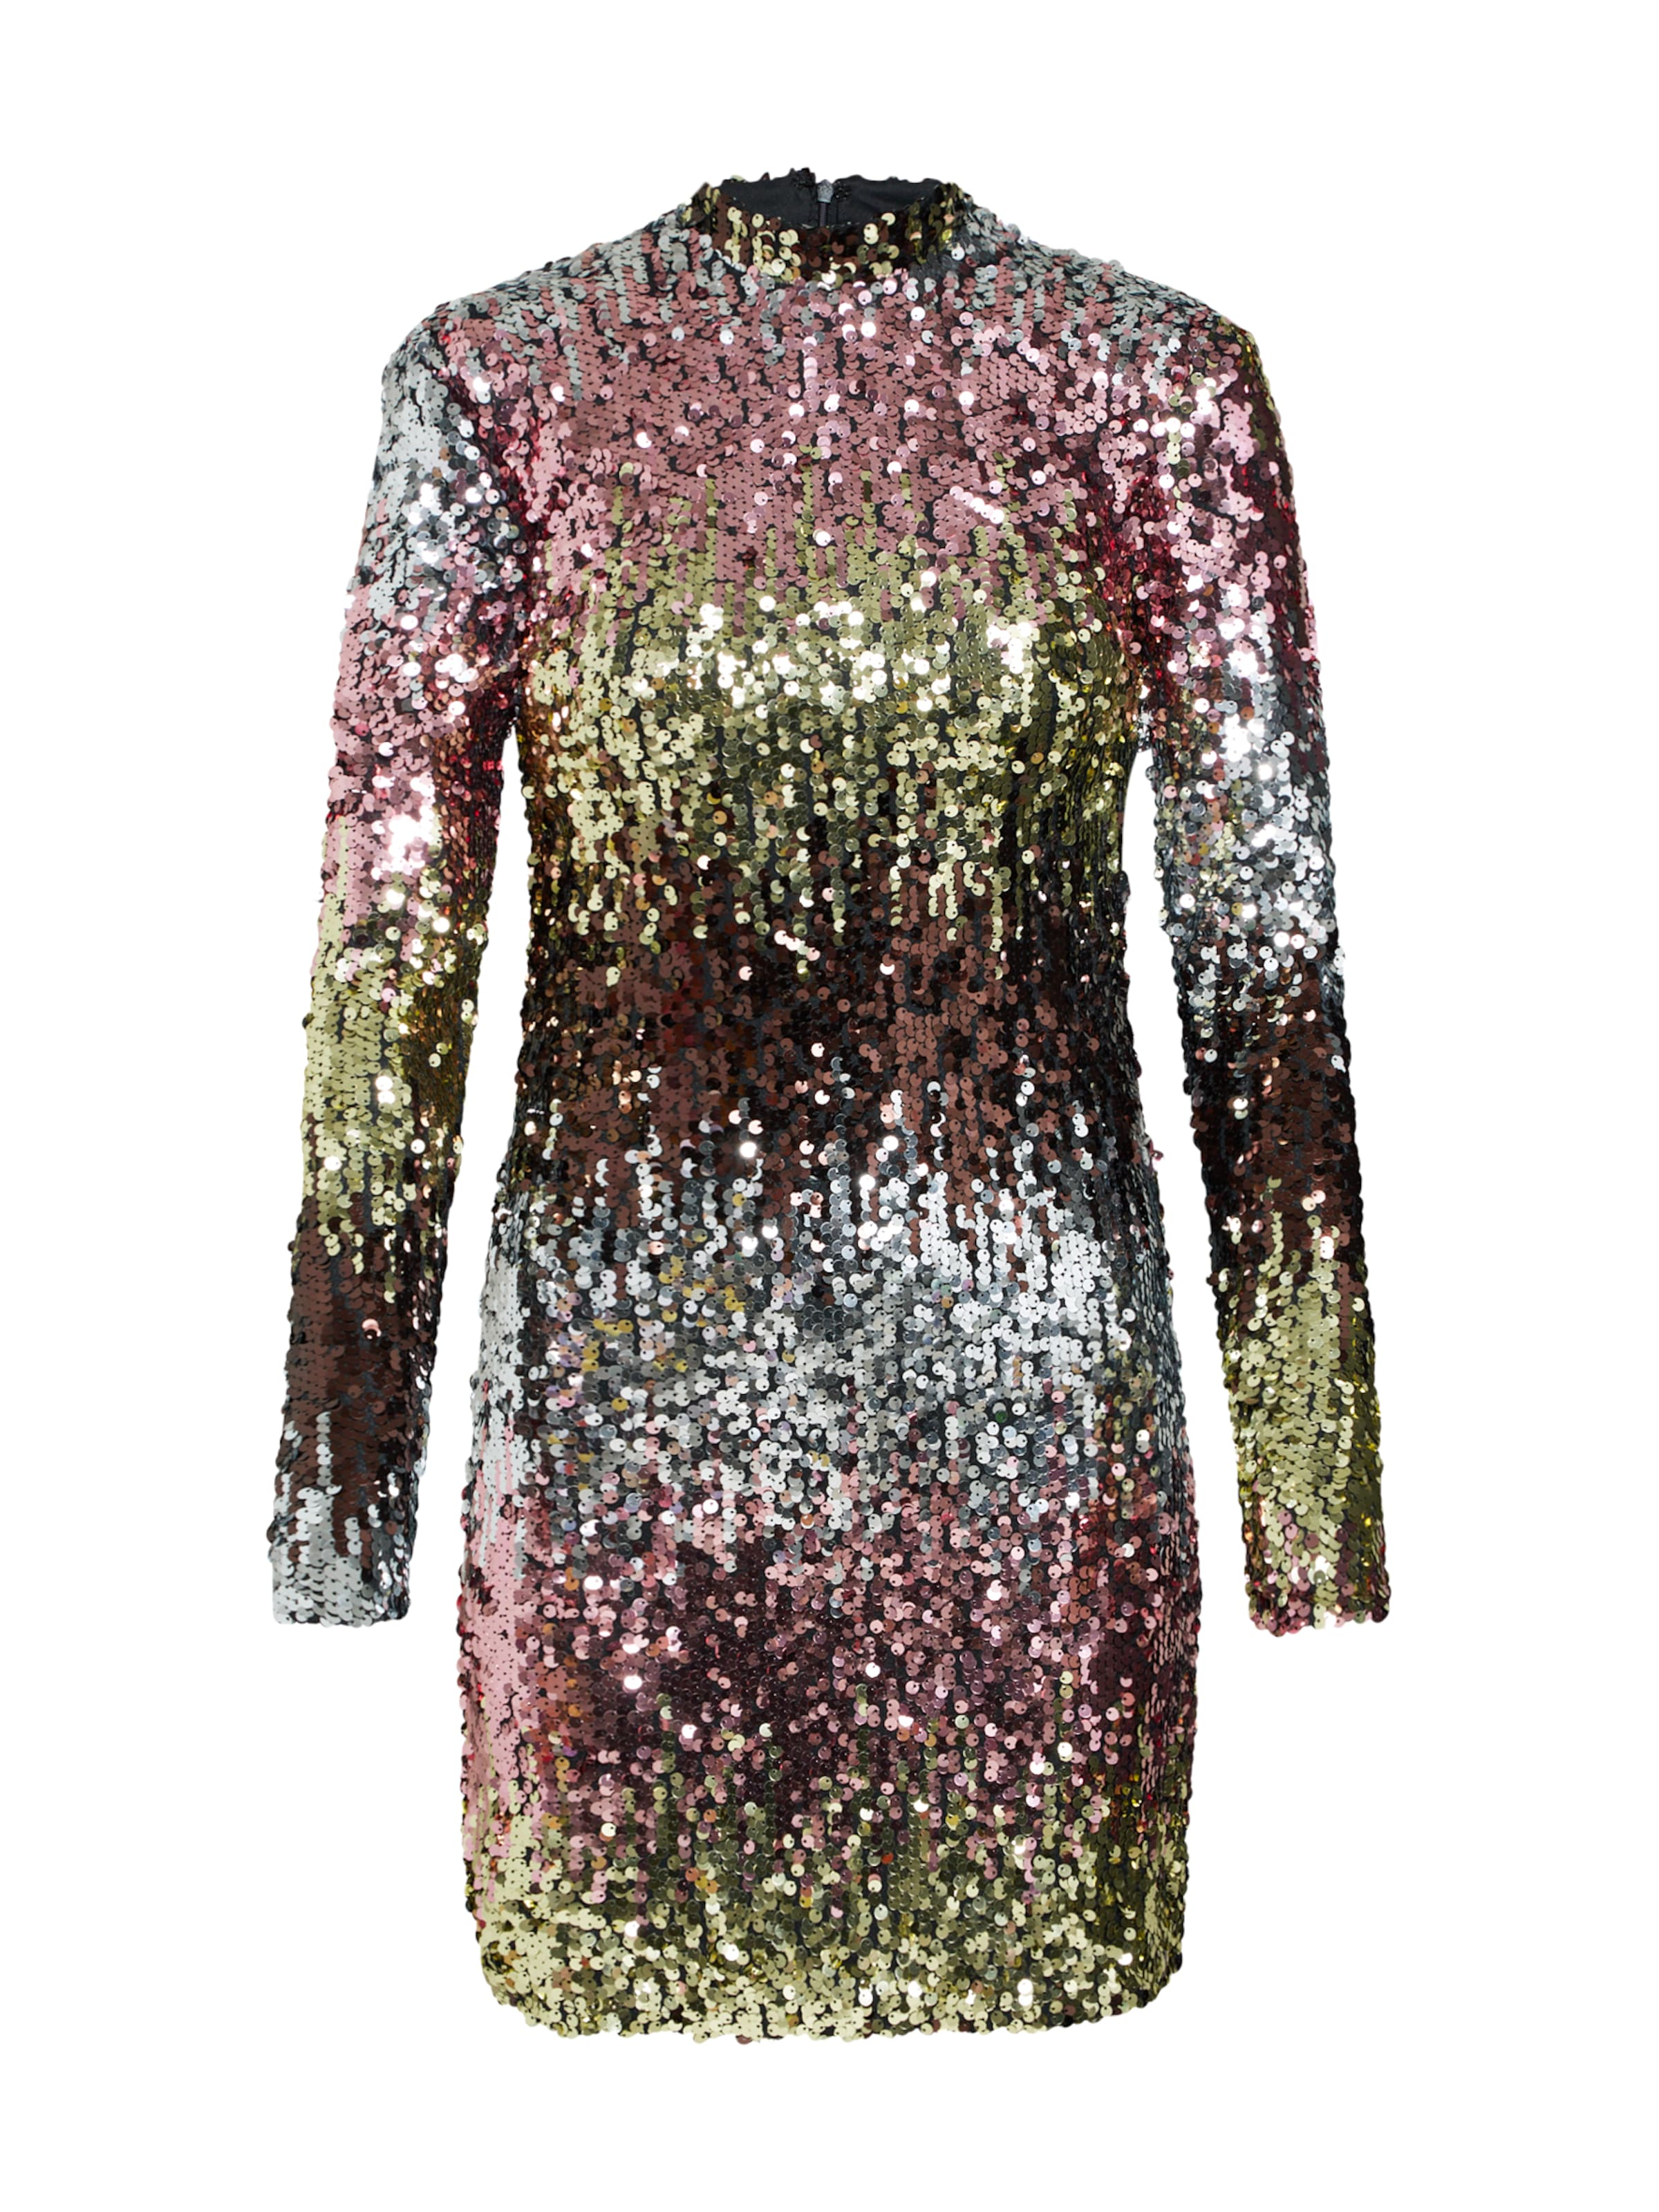 Bcon' Look Silber Sequin GoldPink Kleider New In 'go Ombre Ls K31JTlcF